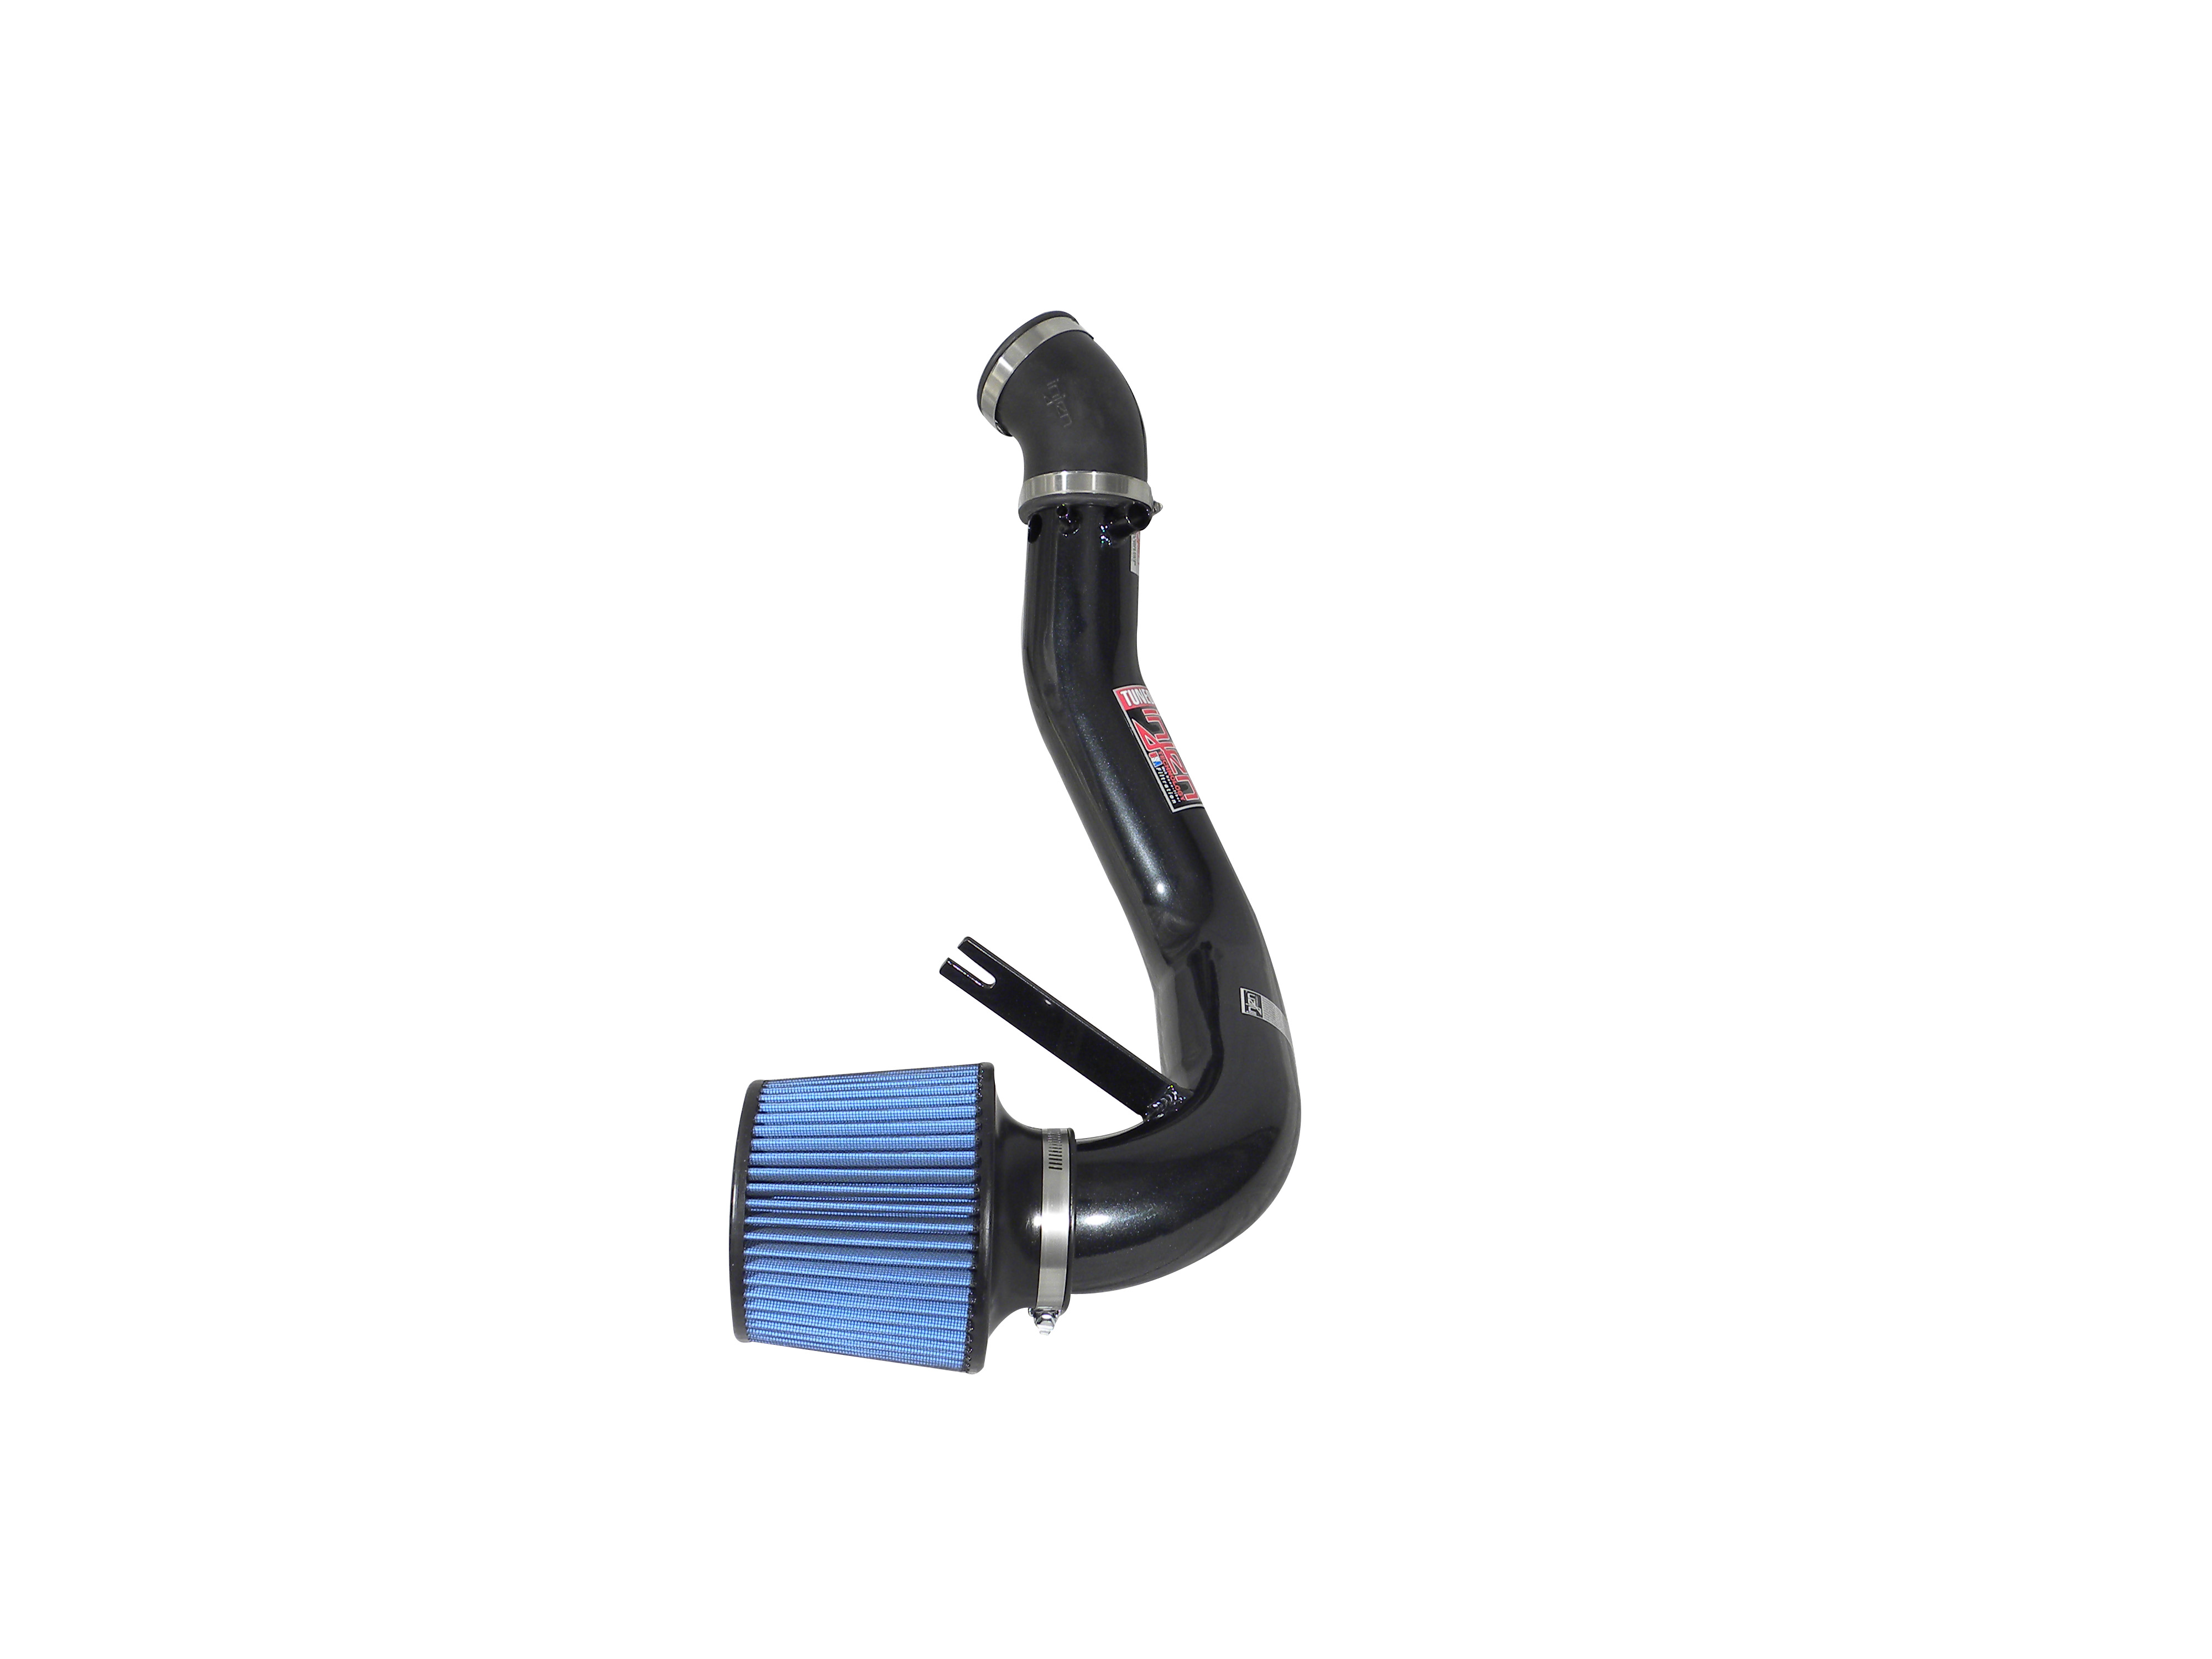 Injen 02-05 Civic Si Cold Air Intake: Black